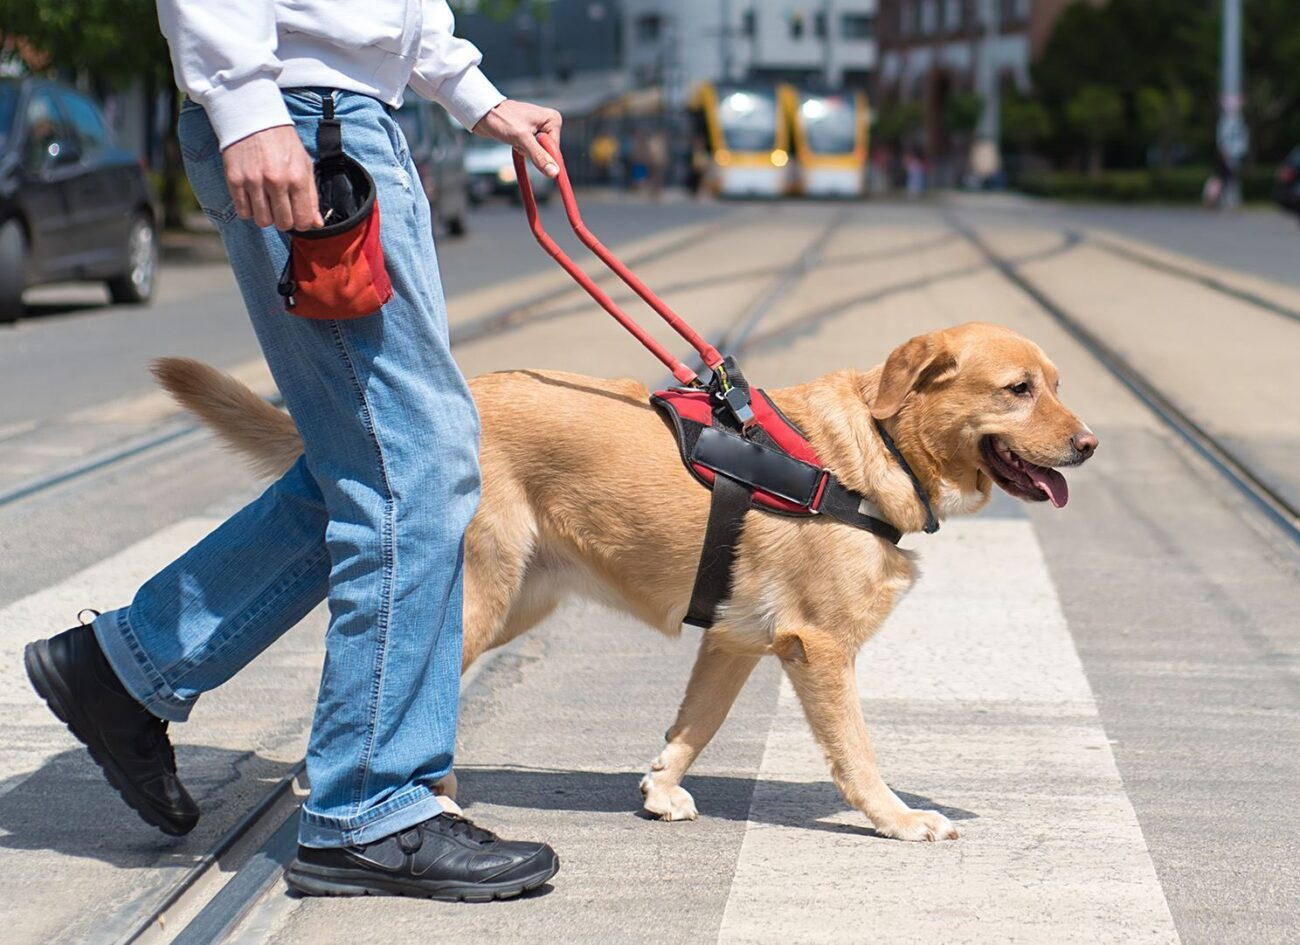 Dog training is a rare skill. Find out how to master the art of dog training with these quick and easy exercises.